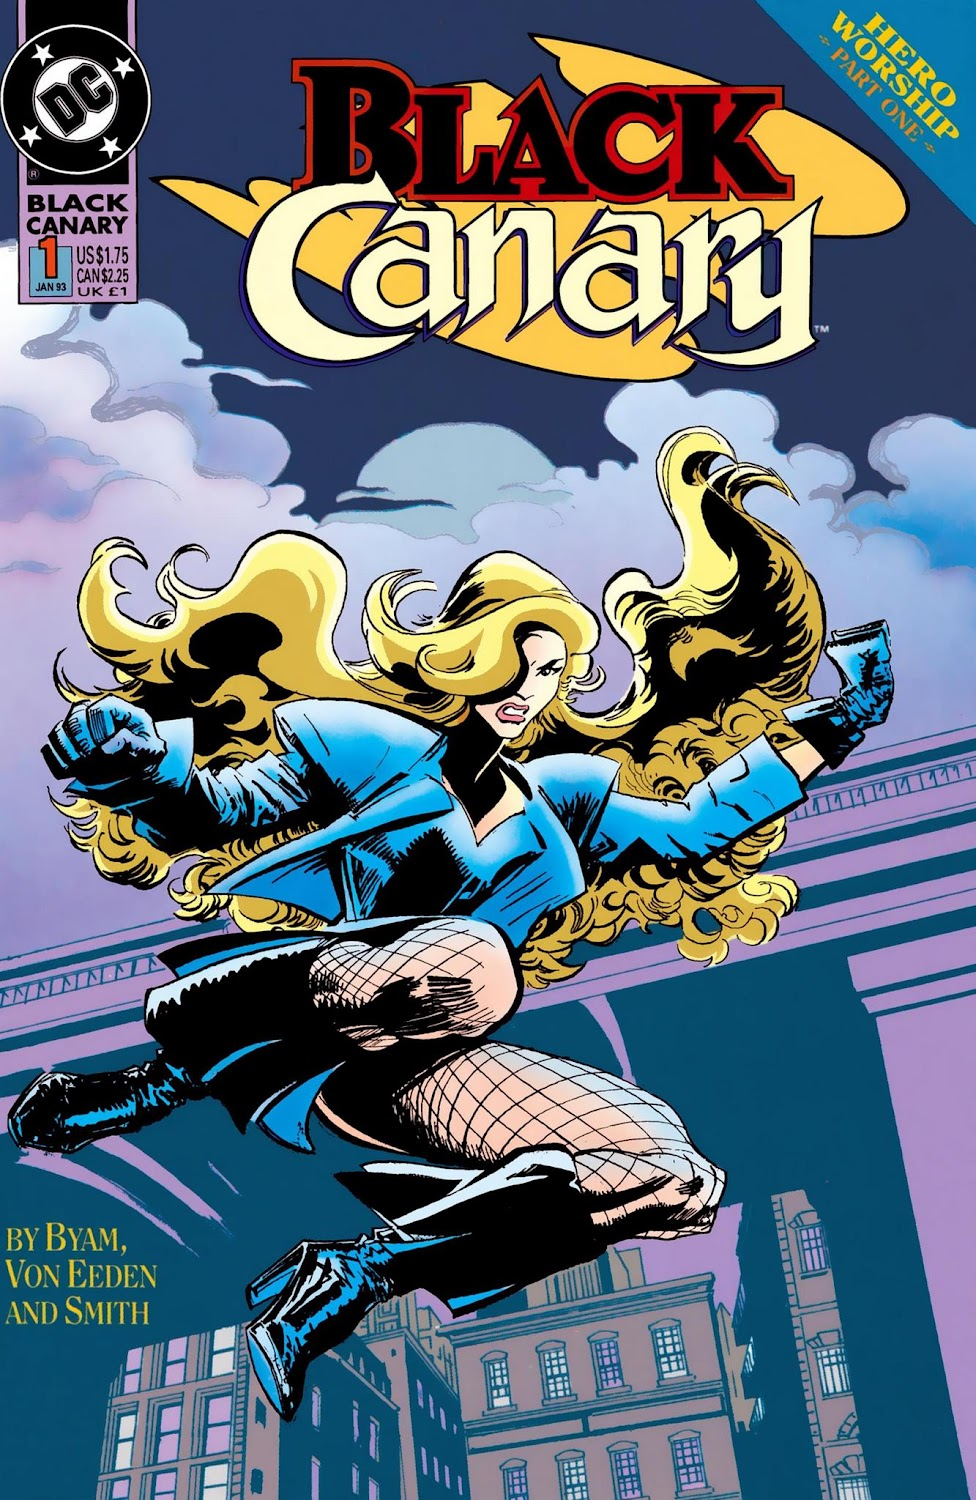 Black Canary (1993) - complete